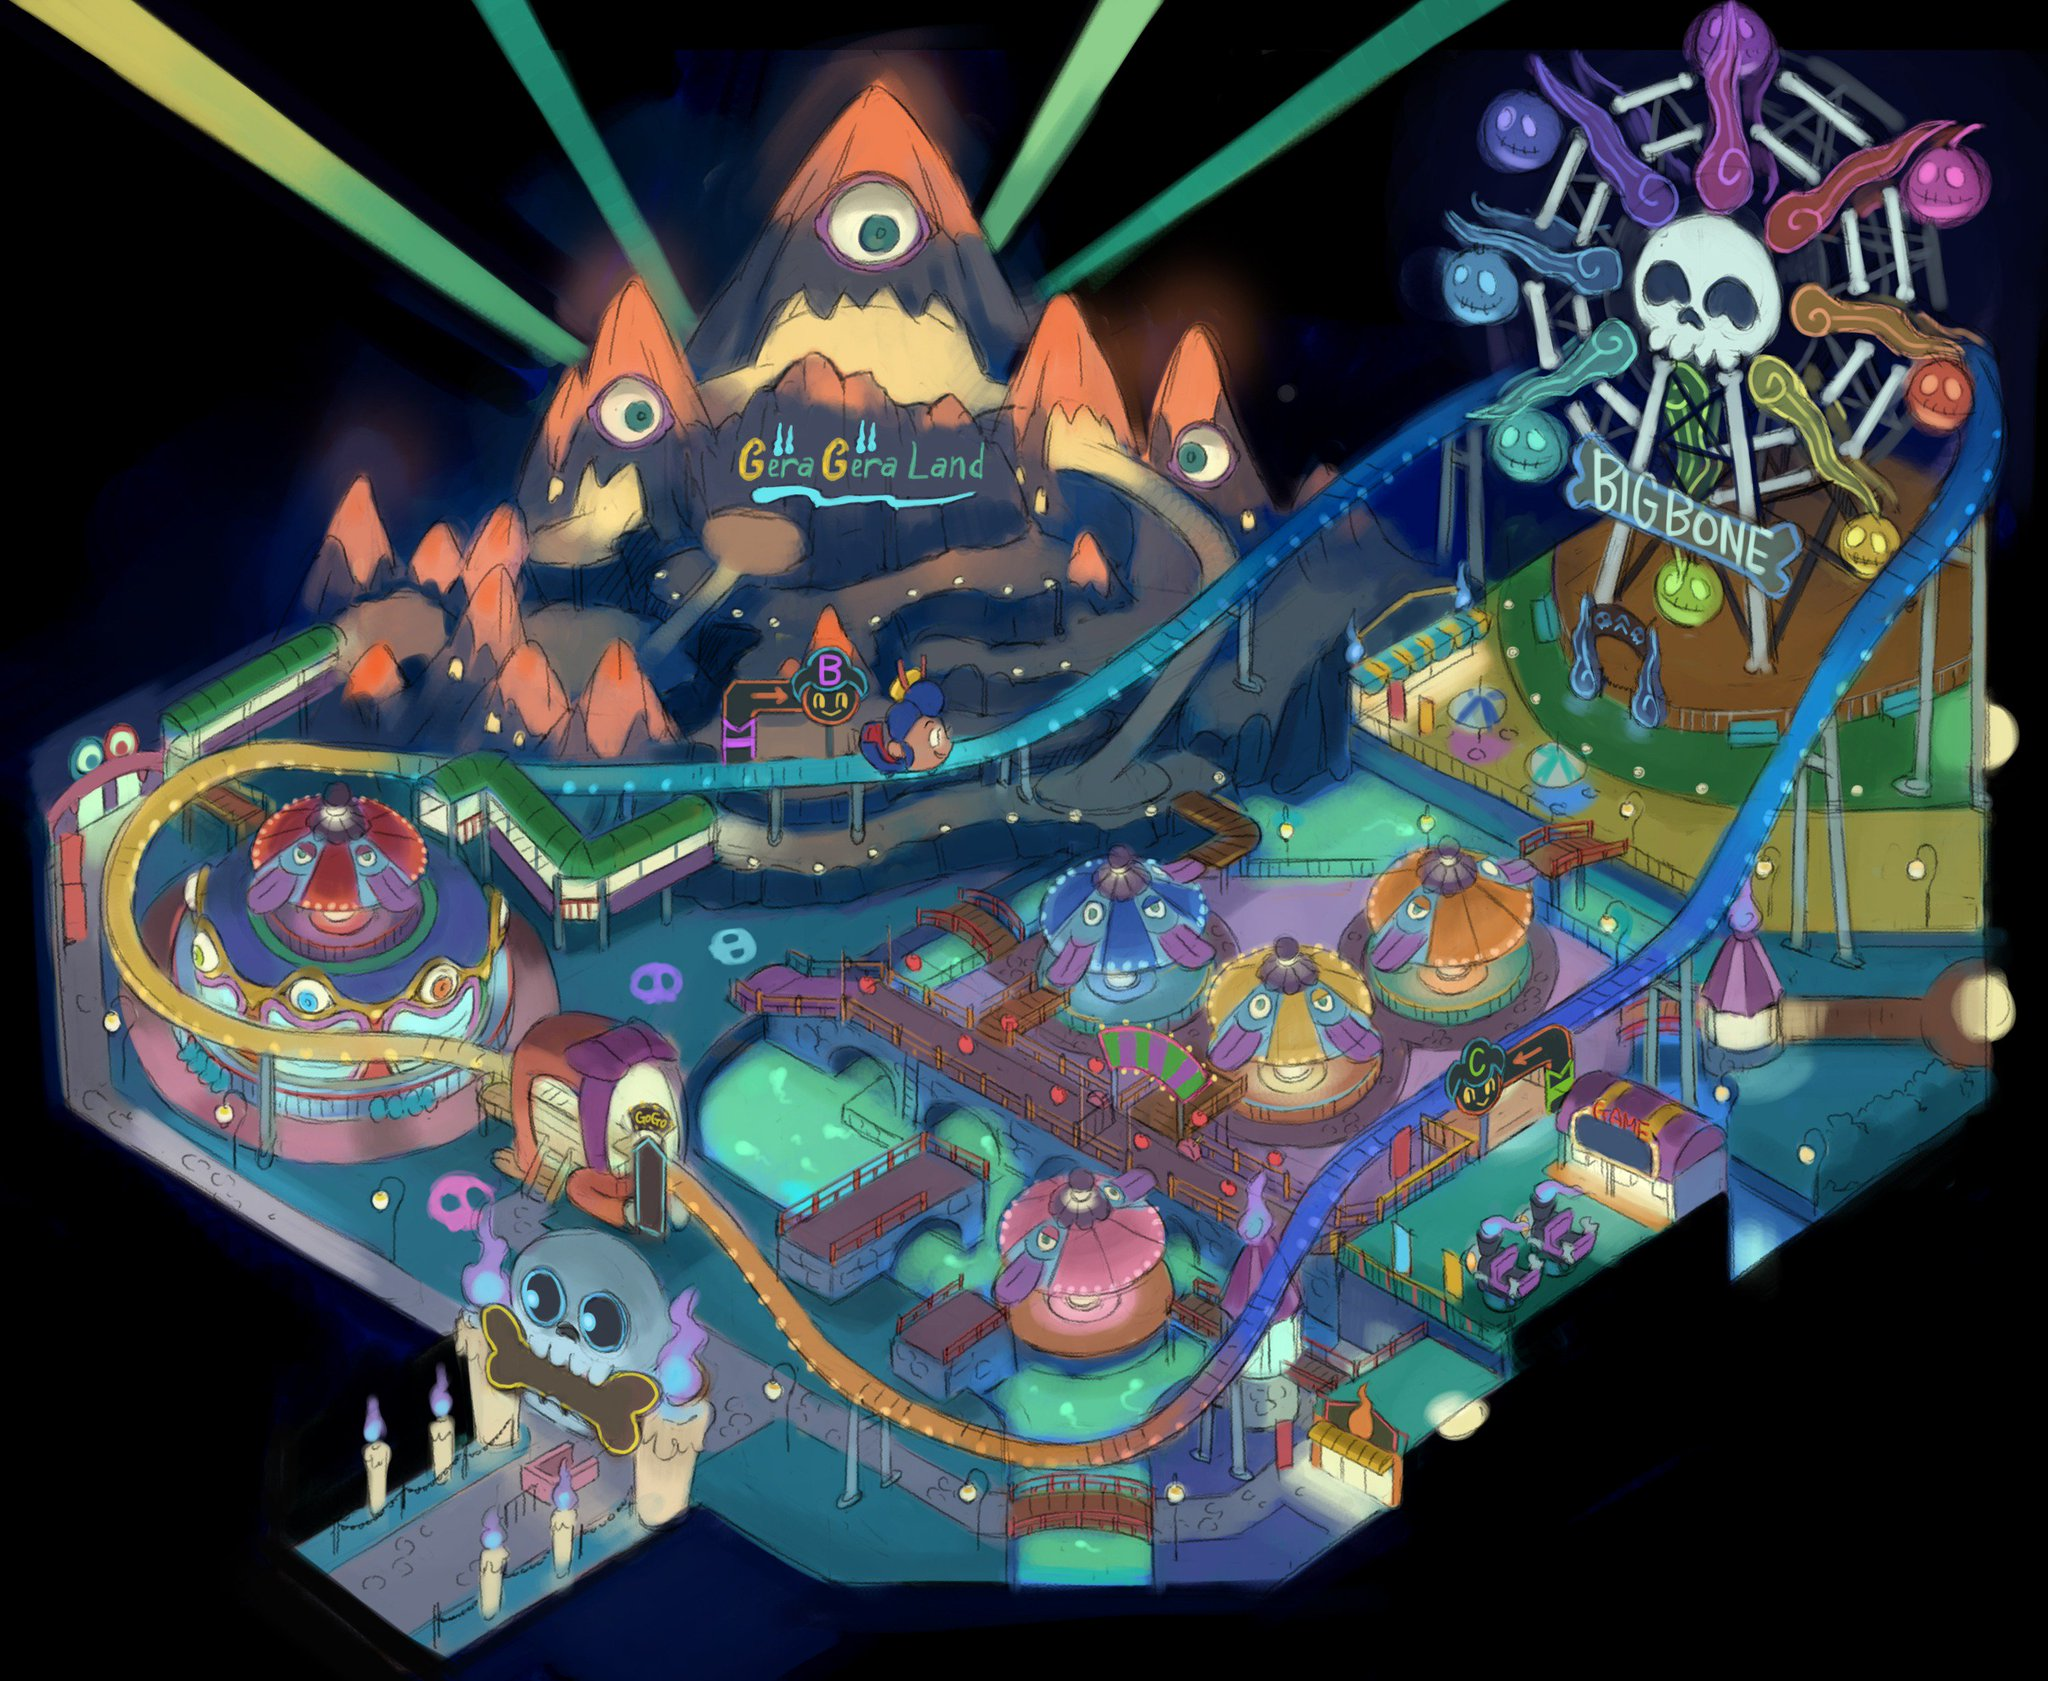 Some say that this strange new place is called the Gera Gera Resort and is where Yo-kai go to play! https://t.co/8bHvdRd2Bl